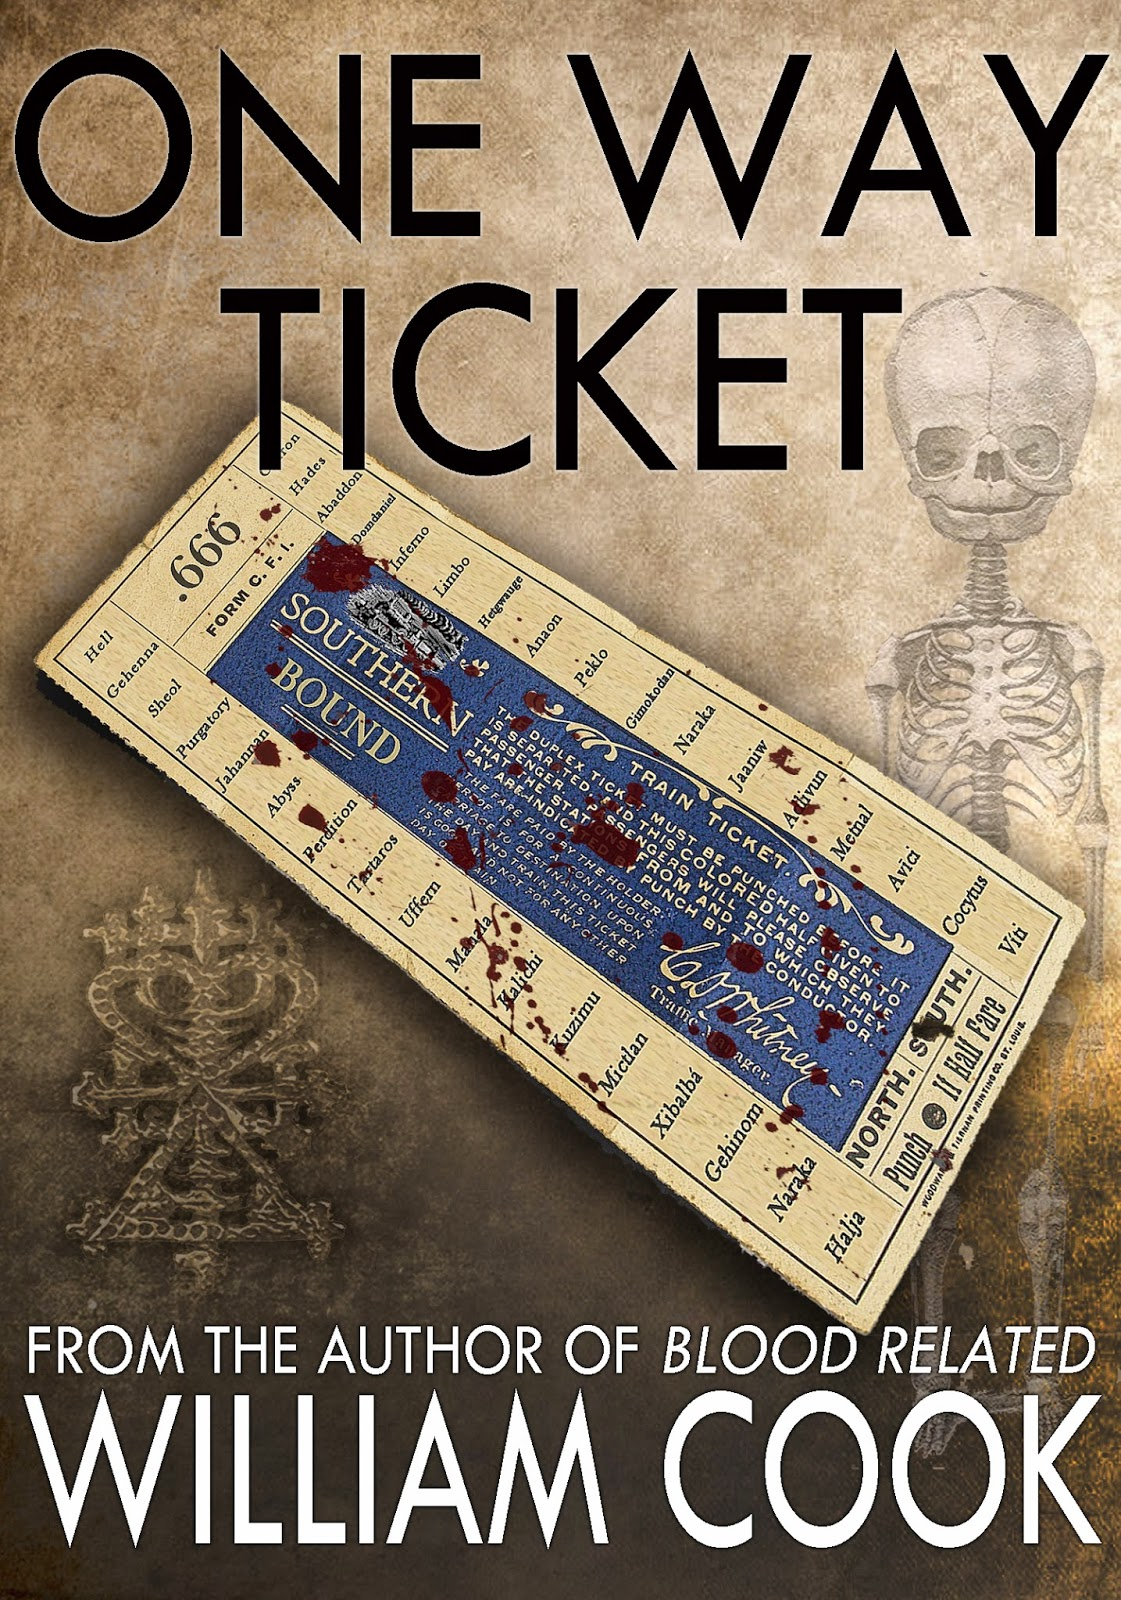 http://www.amazon.com/Ticket-Short-Horror-Fiction-Book-ebook/dp/B00RAMNUBM/ref=la_B003PA513I_1_12?s=books&ie=UTF8&qid=1420422659&sr=1-12